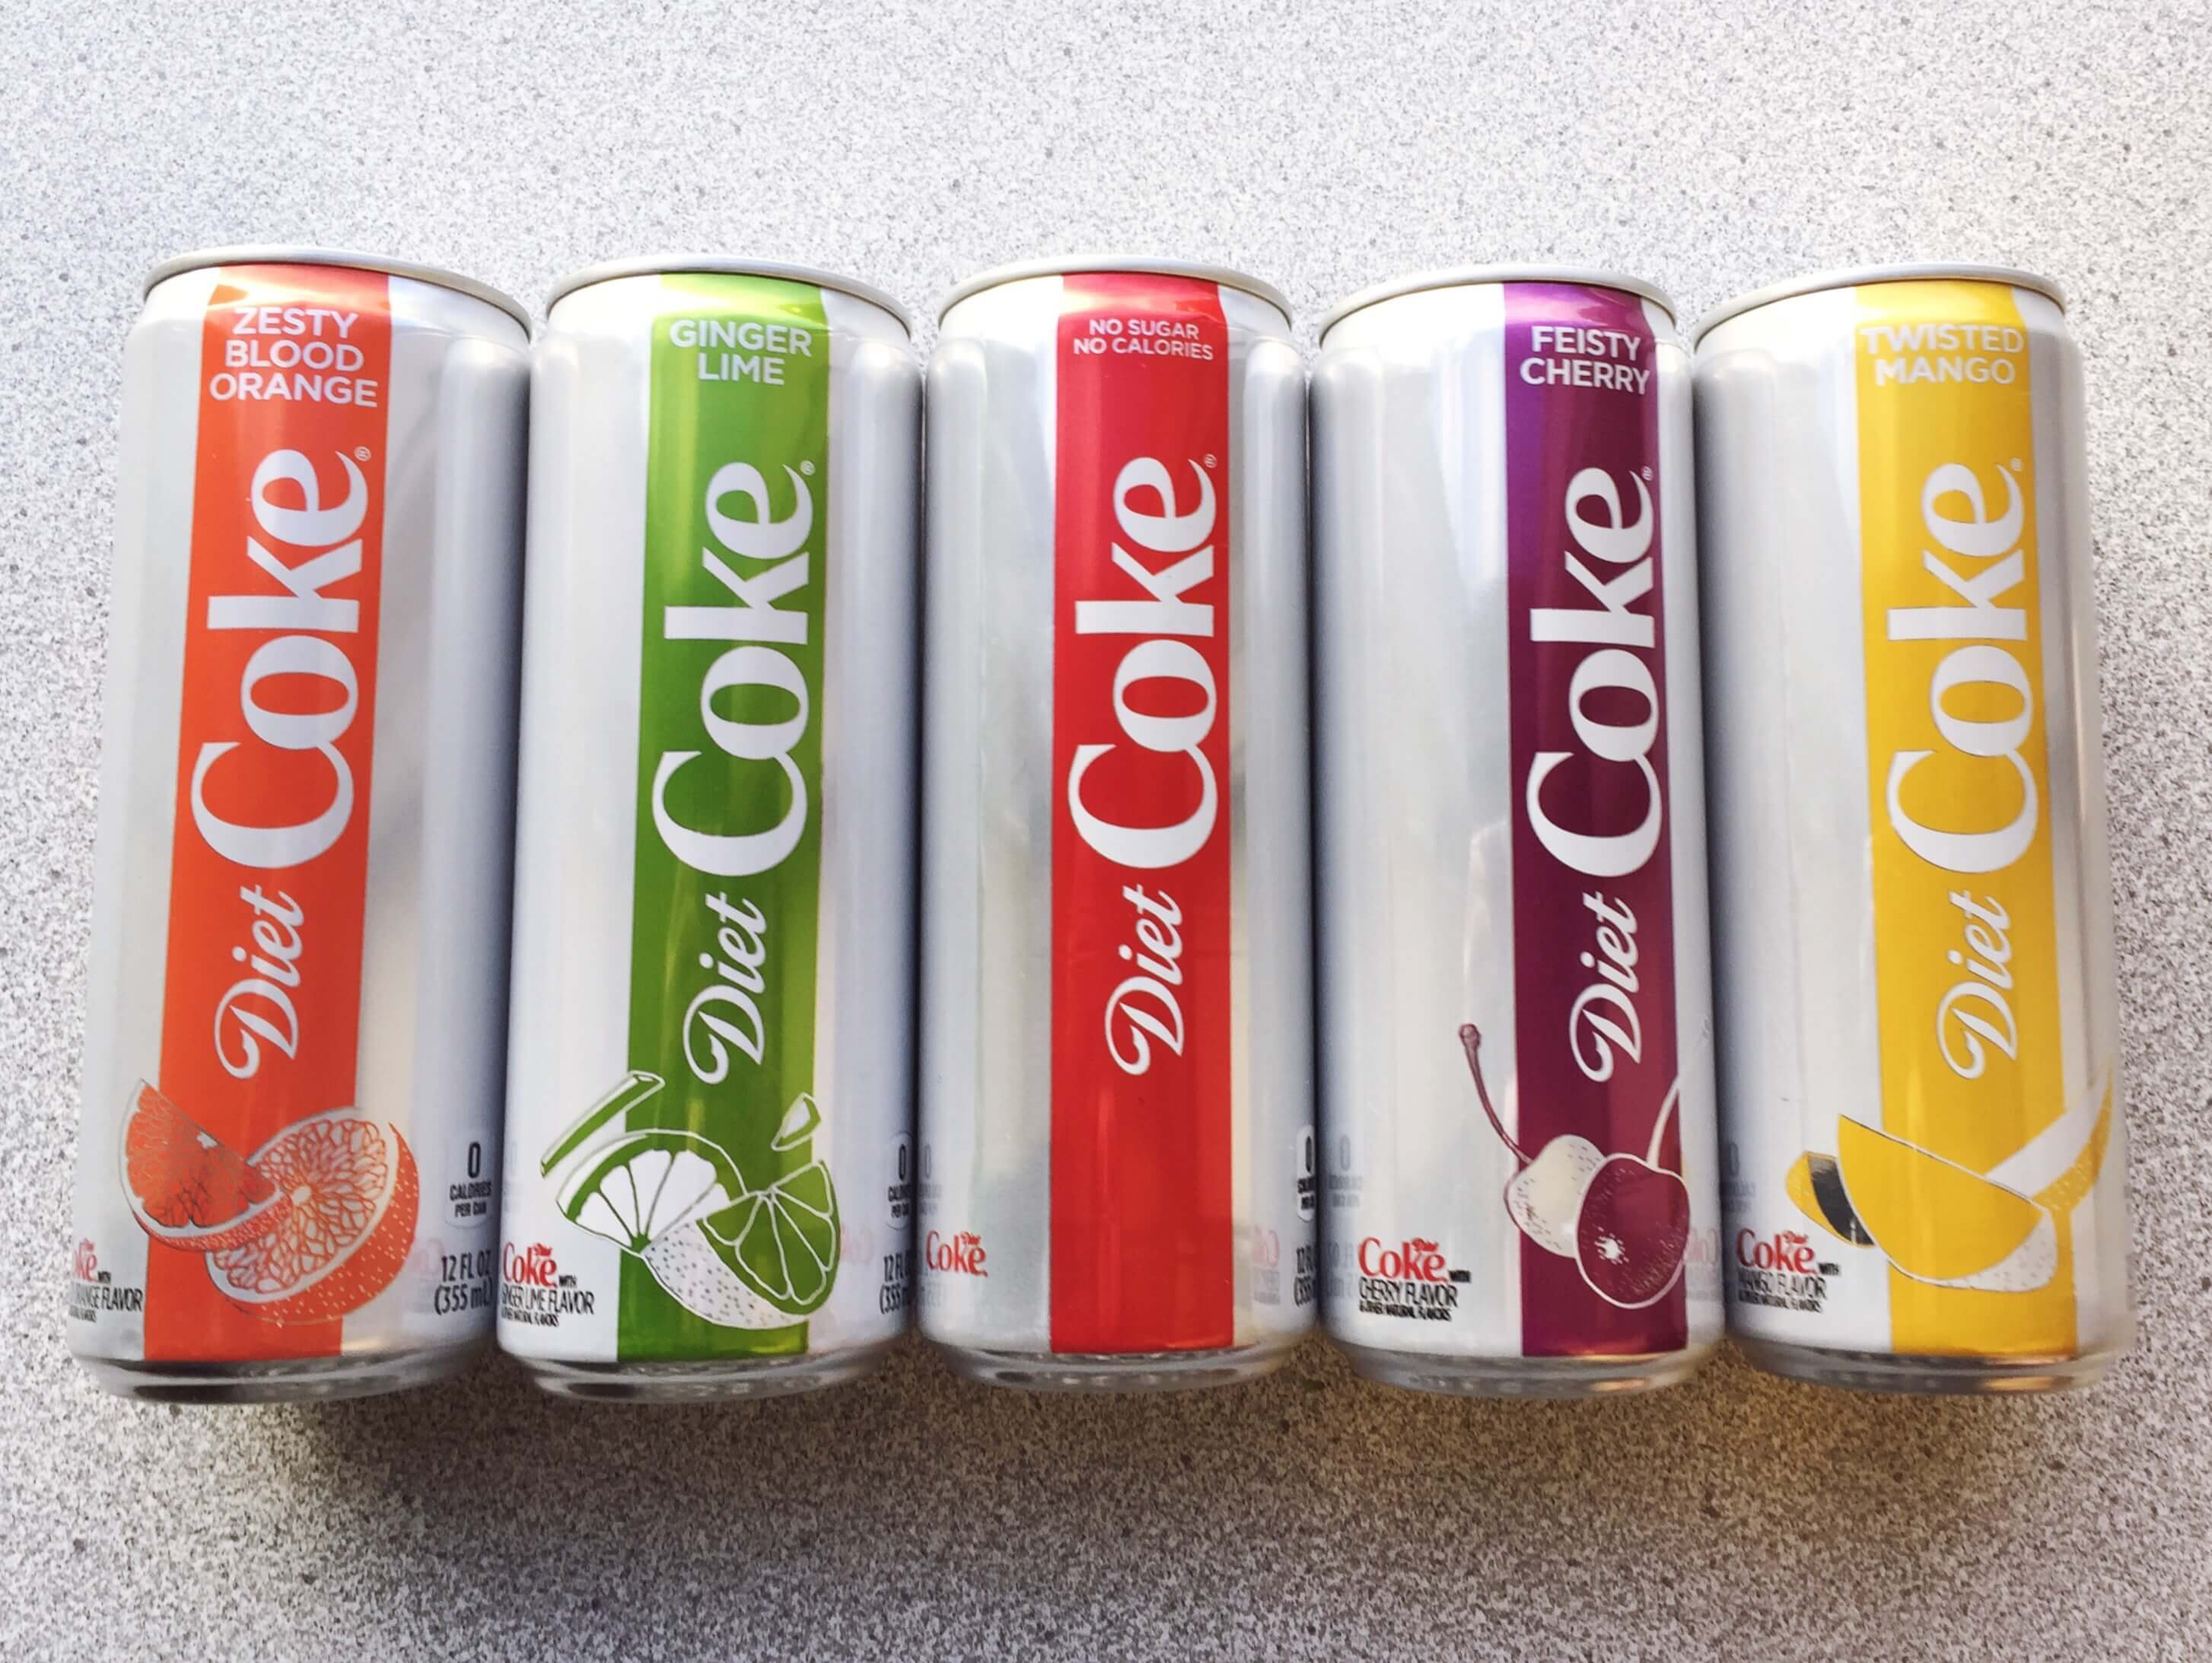 we tried the new diet coke flavors and here's what we thought